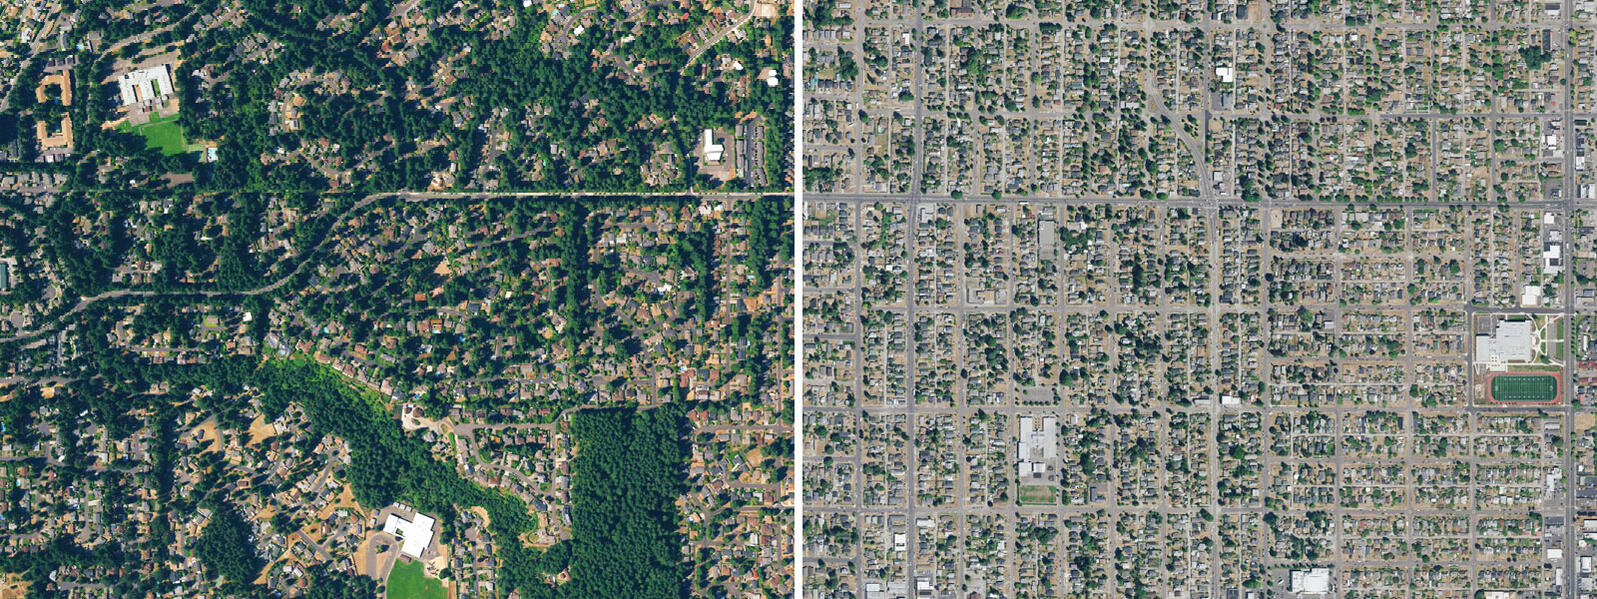 Aerial view showing the difference in tree cover between University Place, Washington (left) and Tacoma, Washington (right). Photos: Megan Kitagawa/UW Tacoma